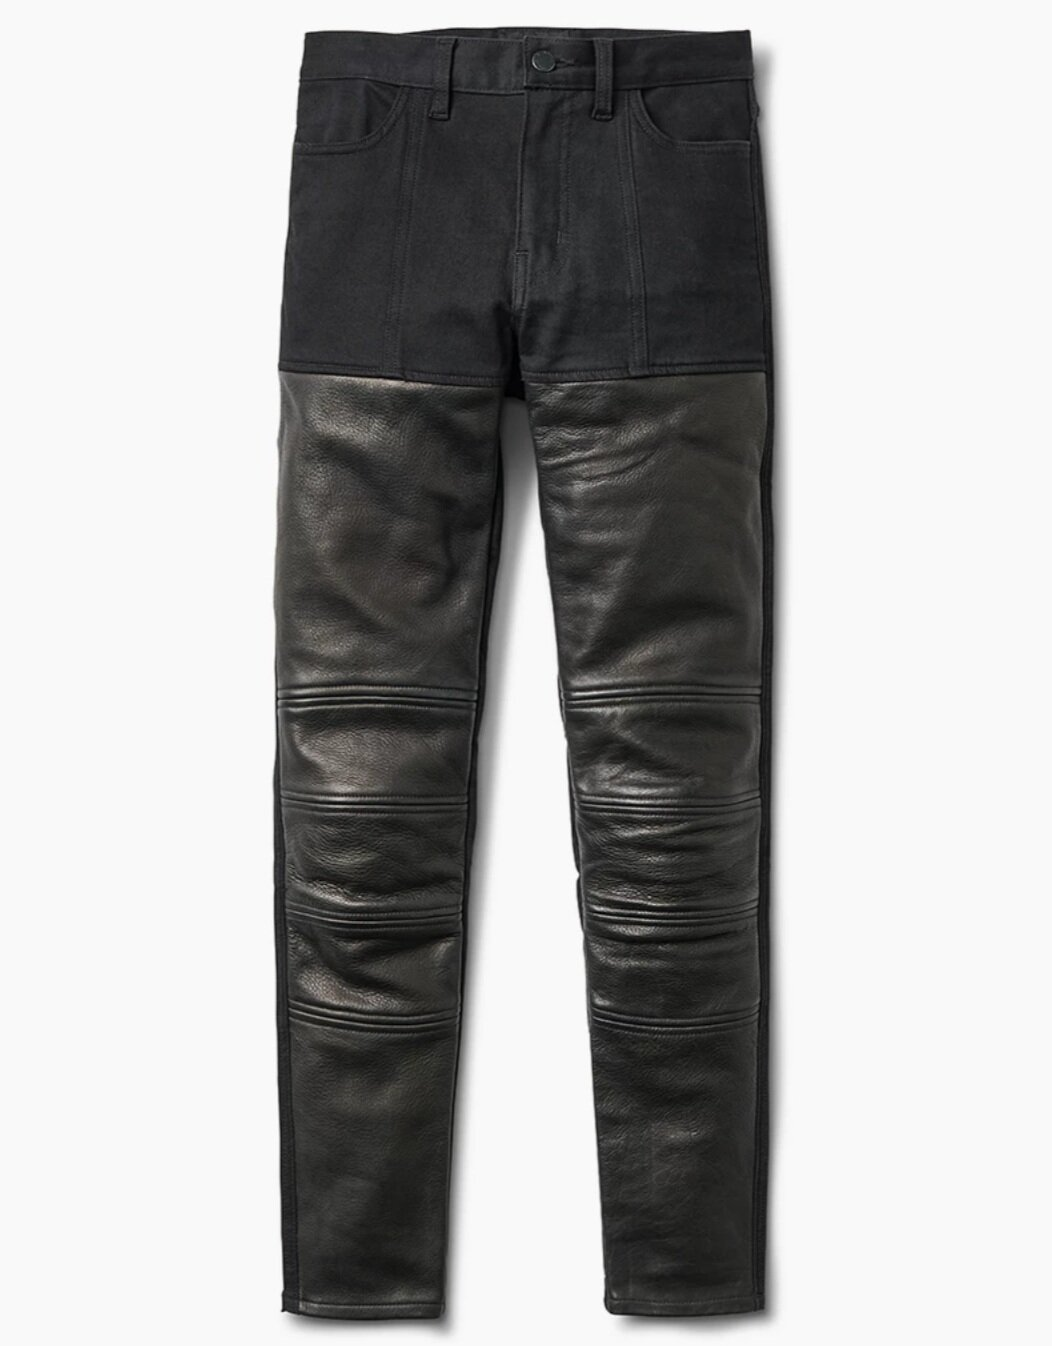 SHRED 2.O MOTO JEANS - WITH DUPONT KEVLAR AND D30 ARMOR. THE UV COATED LEATHER HELPS TO BLOG THE WIND AND PROTECT YOUR SKIN. THEY FIT LIKE A DREAM WITH PLENTY OF STRETCH!